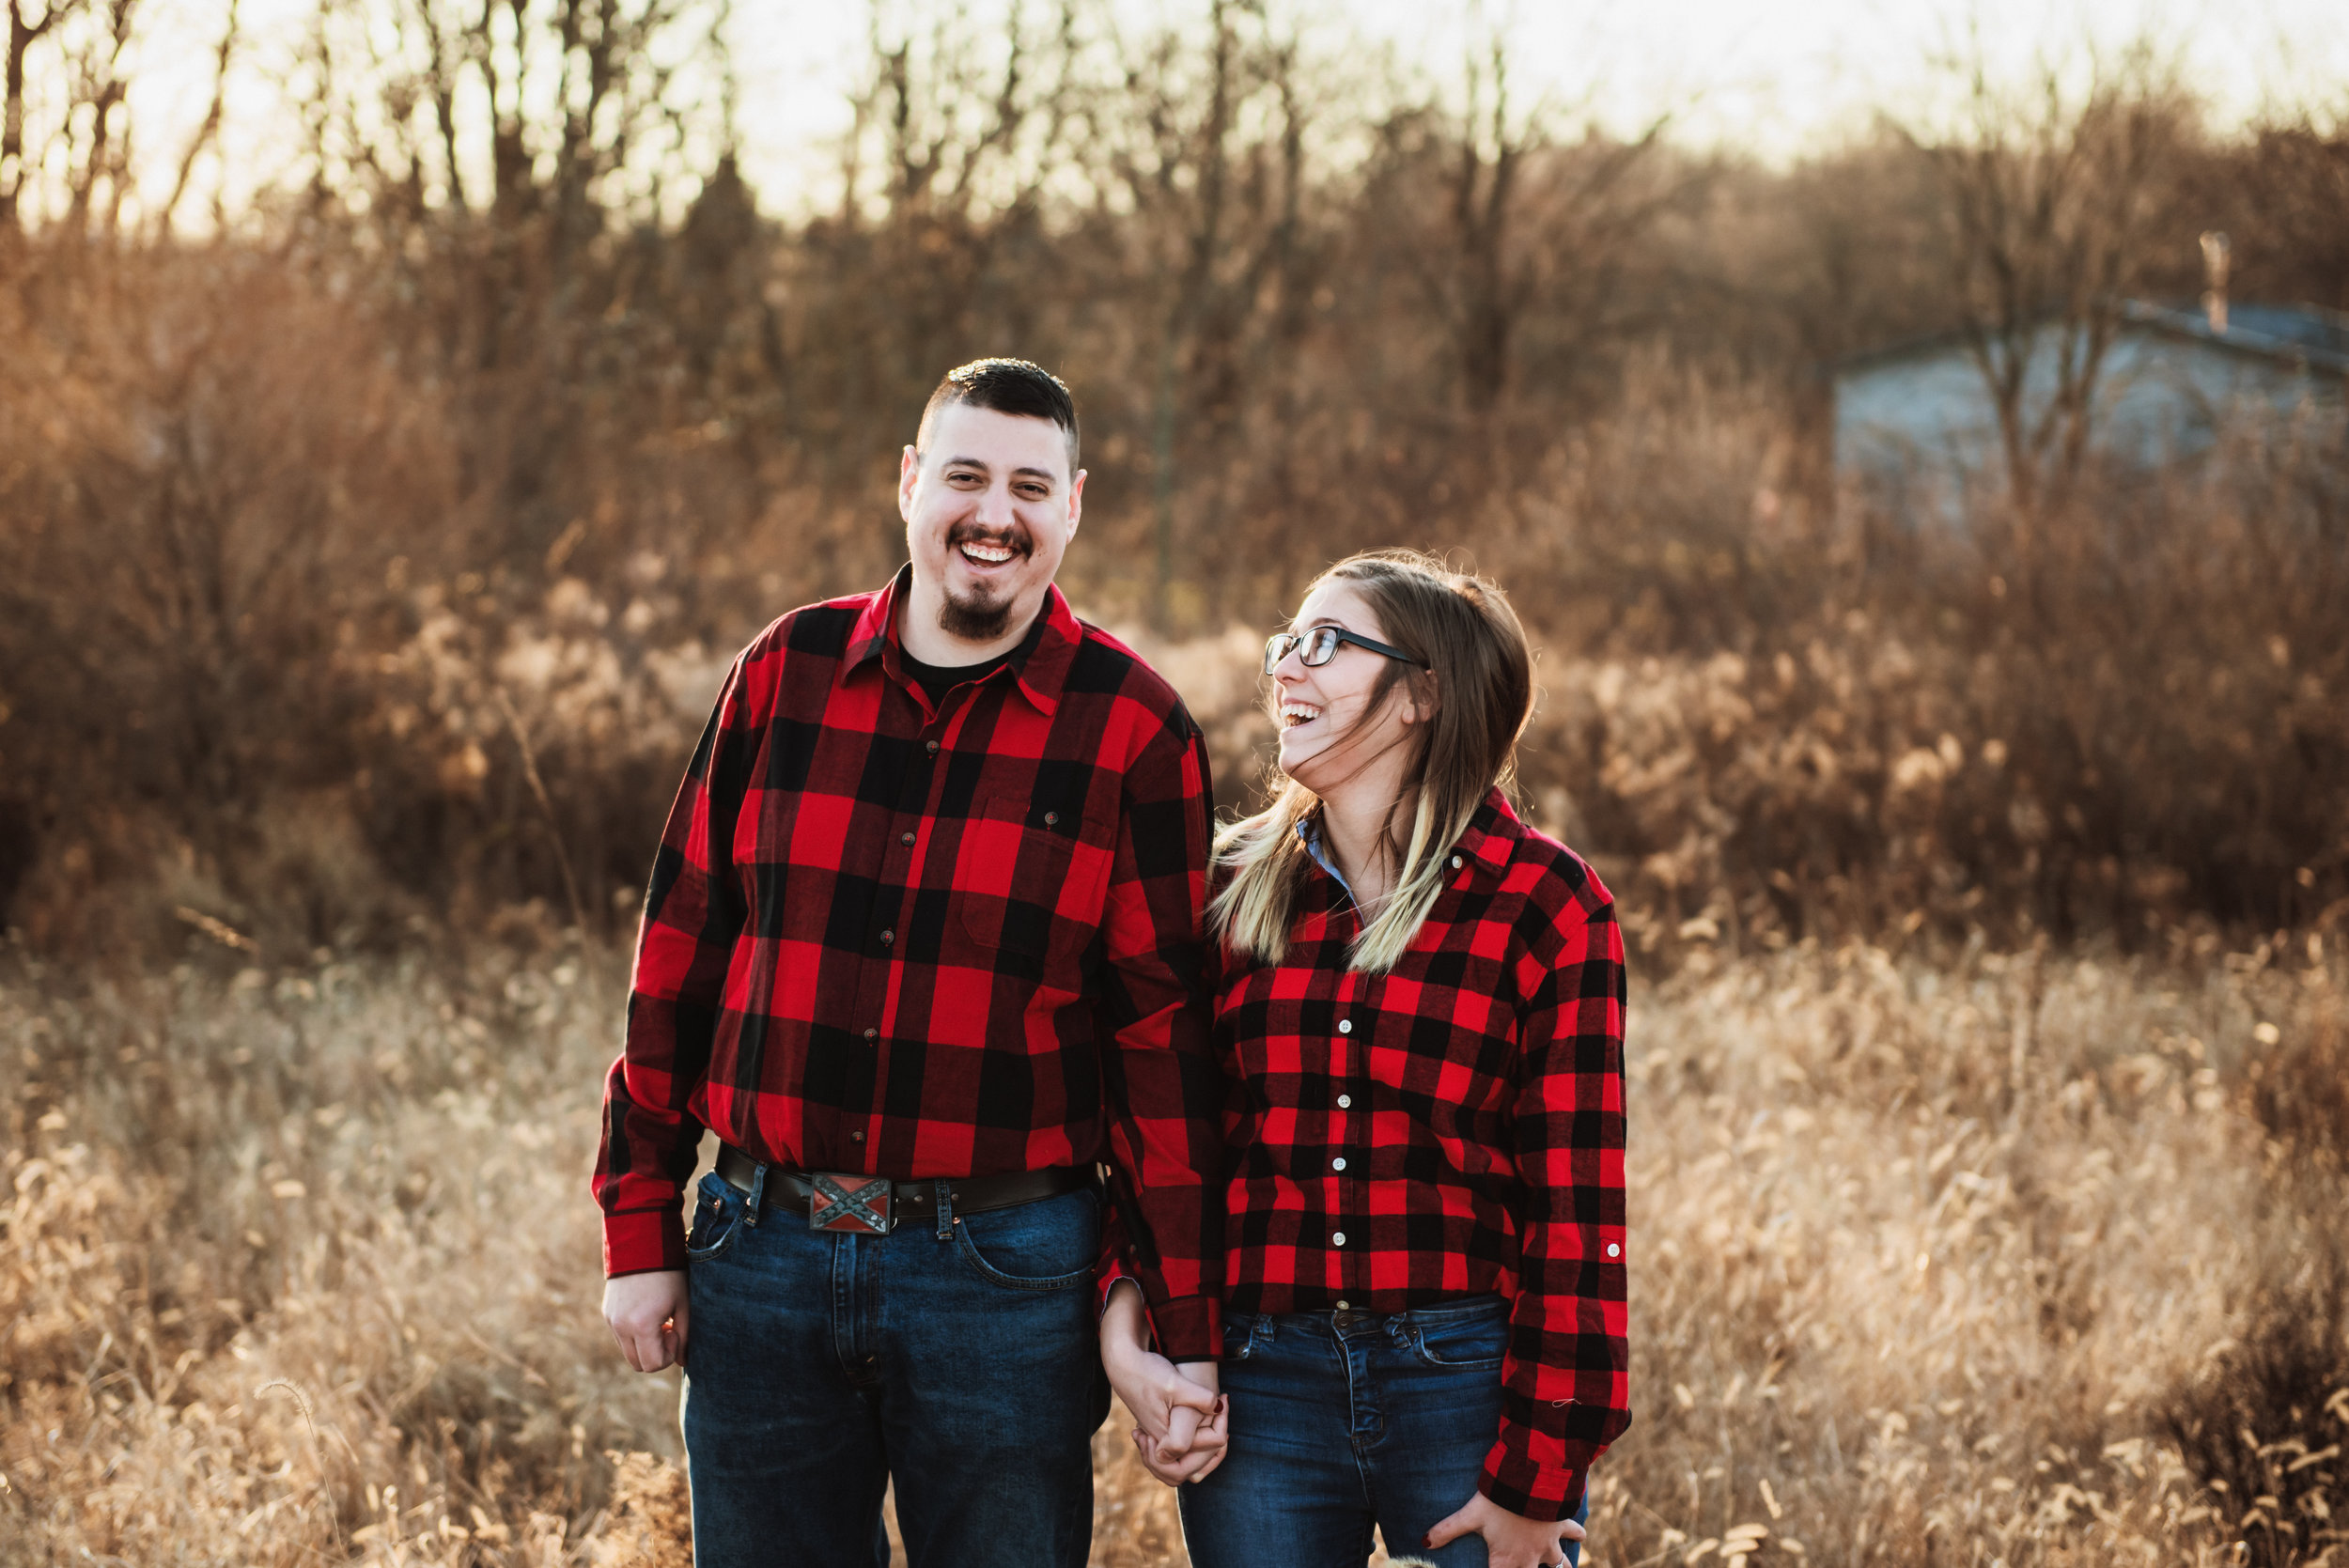 KayAnn & Drayce - We loved working will Jess. She made us laugh and giggle we truly had a very great time she captured our love in so many different ways for our engagement photos! she has a great personality and a very creative mind I would definitely recommend her to anyone! I can't wait for her to capture our big day with family n friends❤️